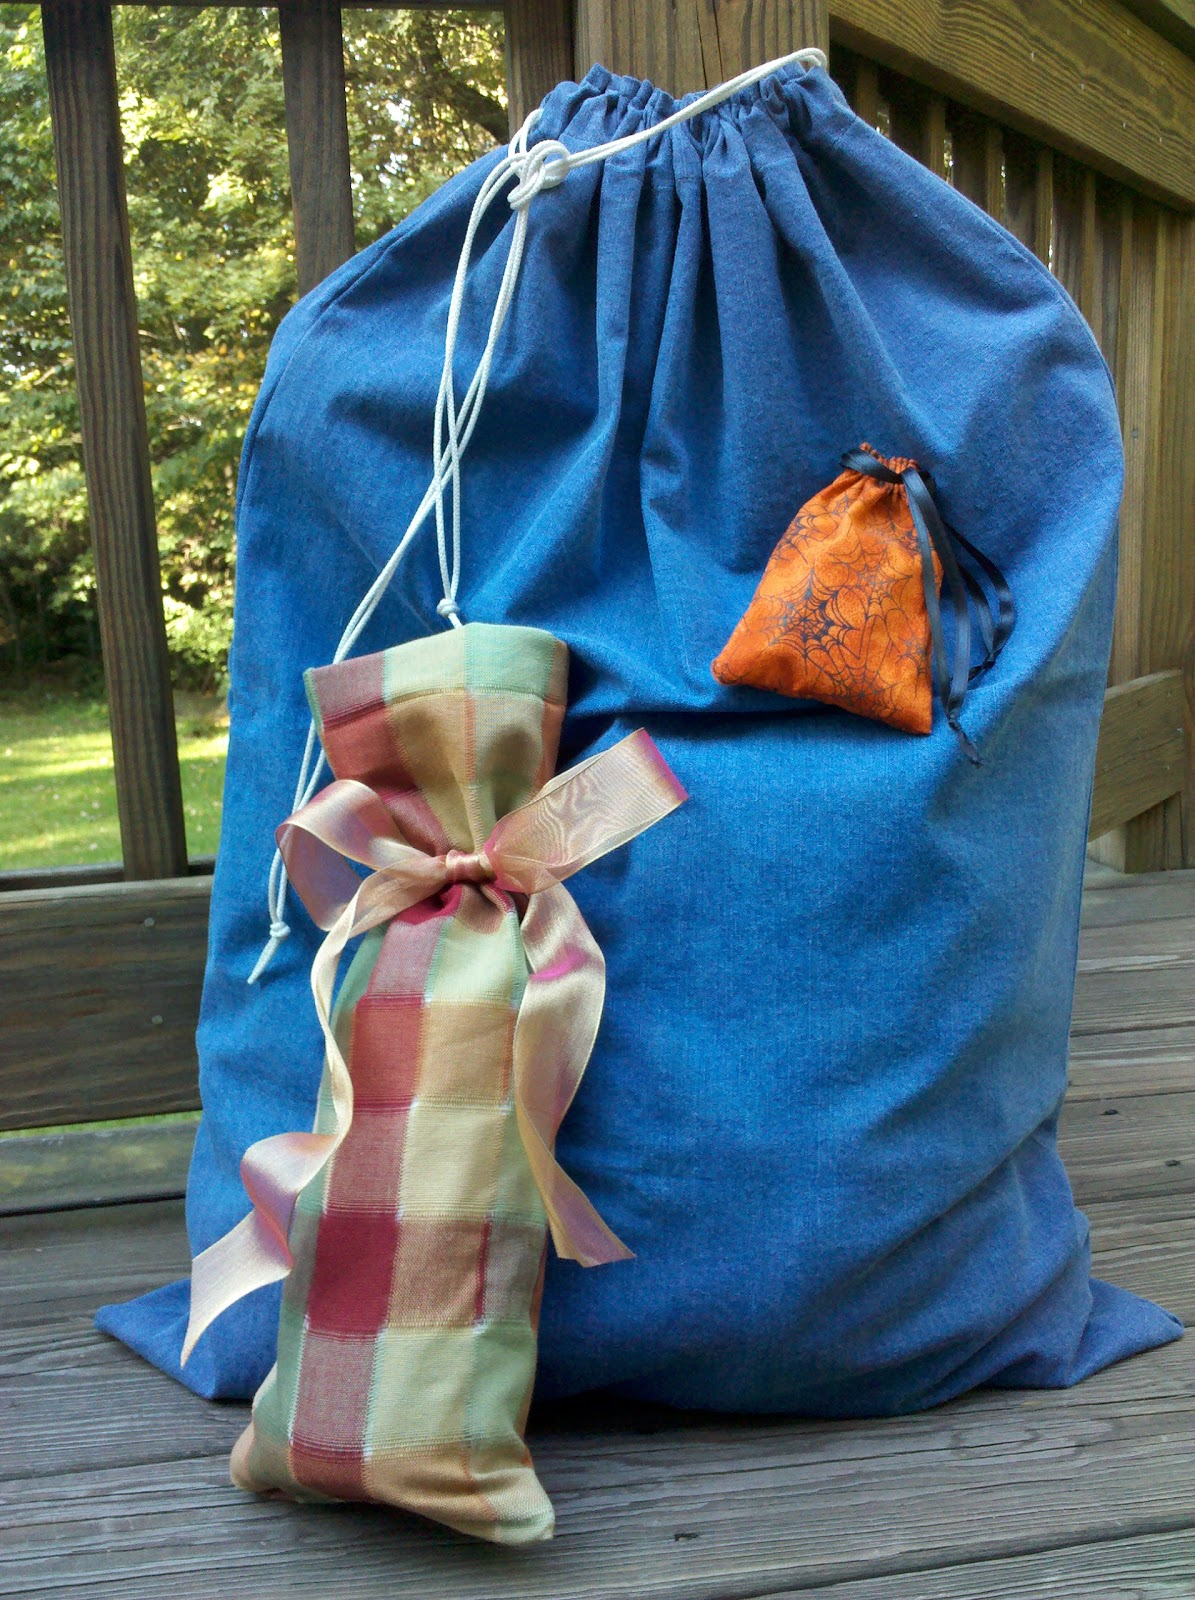 The Crafty Librarian: DRAWSTRING BAGS: ONE TECHNIQUE, MANY USES